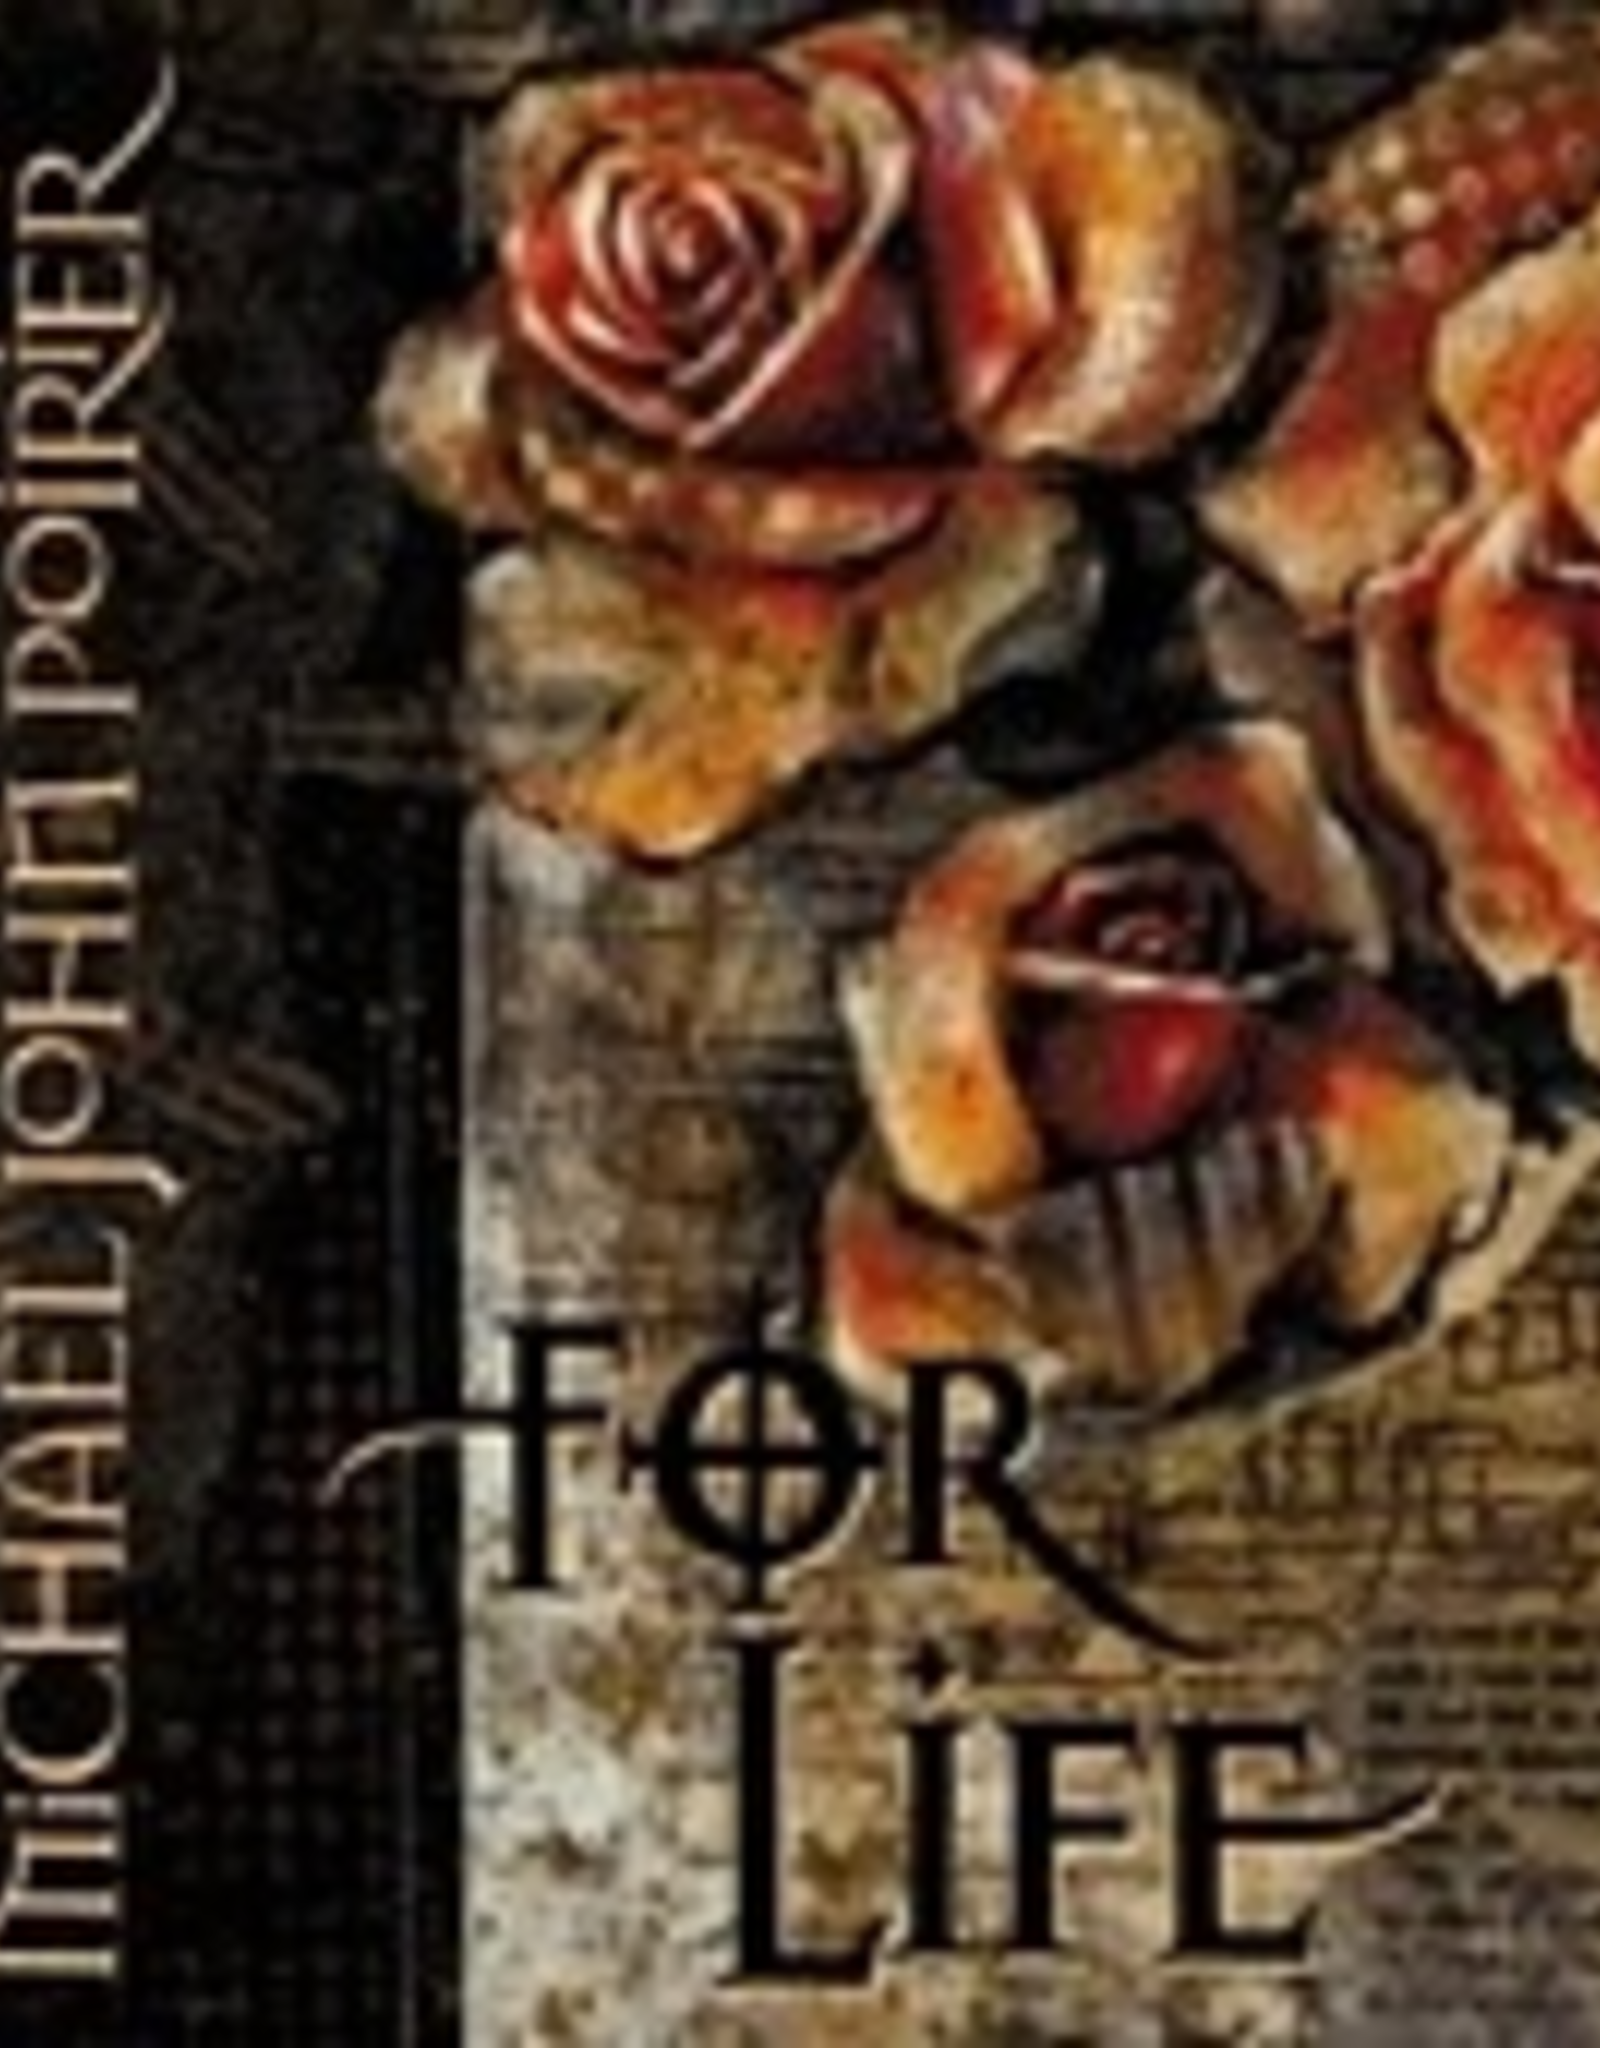 Michael John Poirier For Life, by Michael John Poirier (CD)